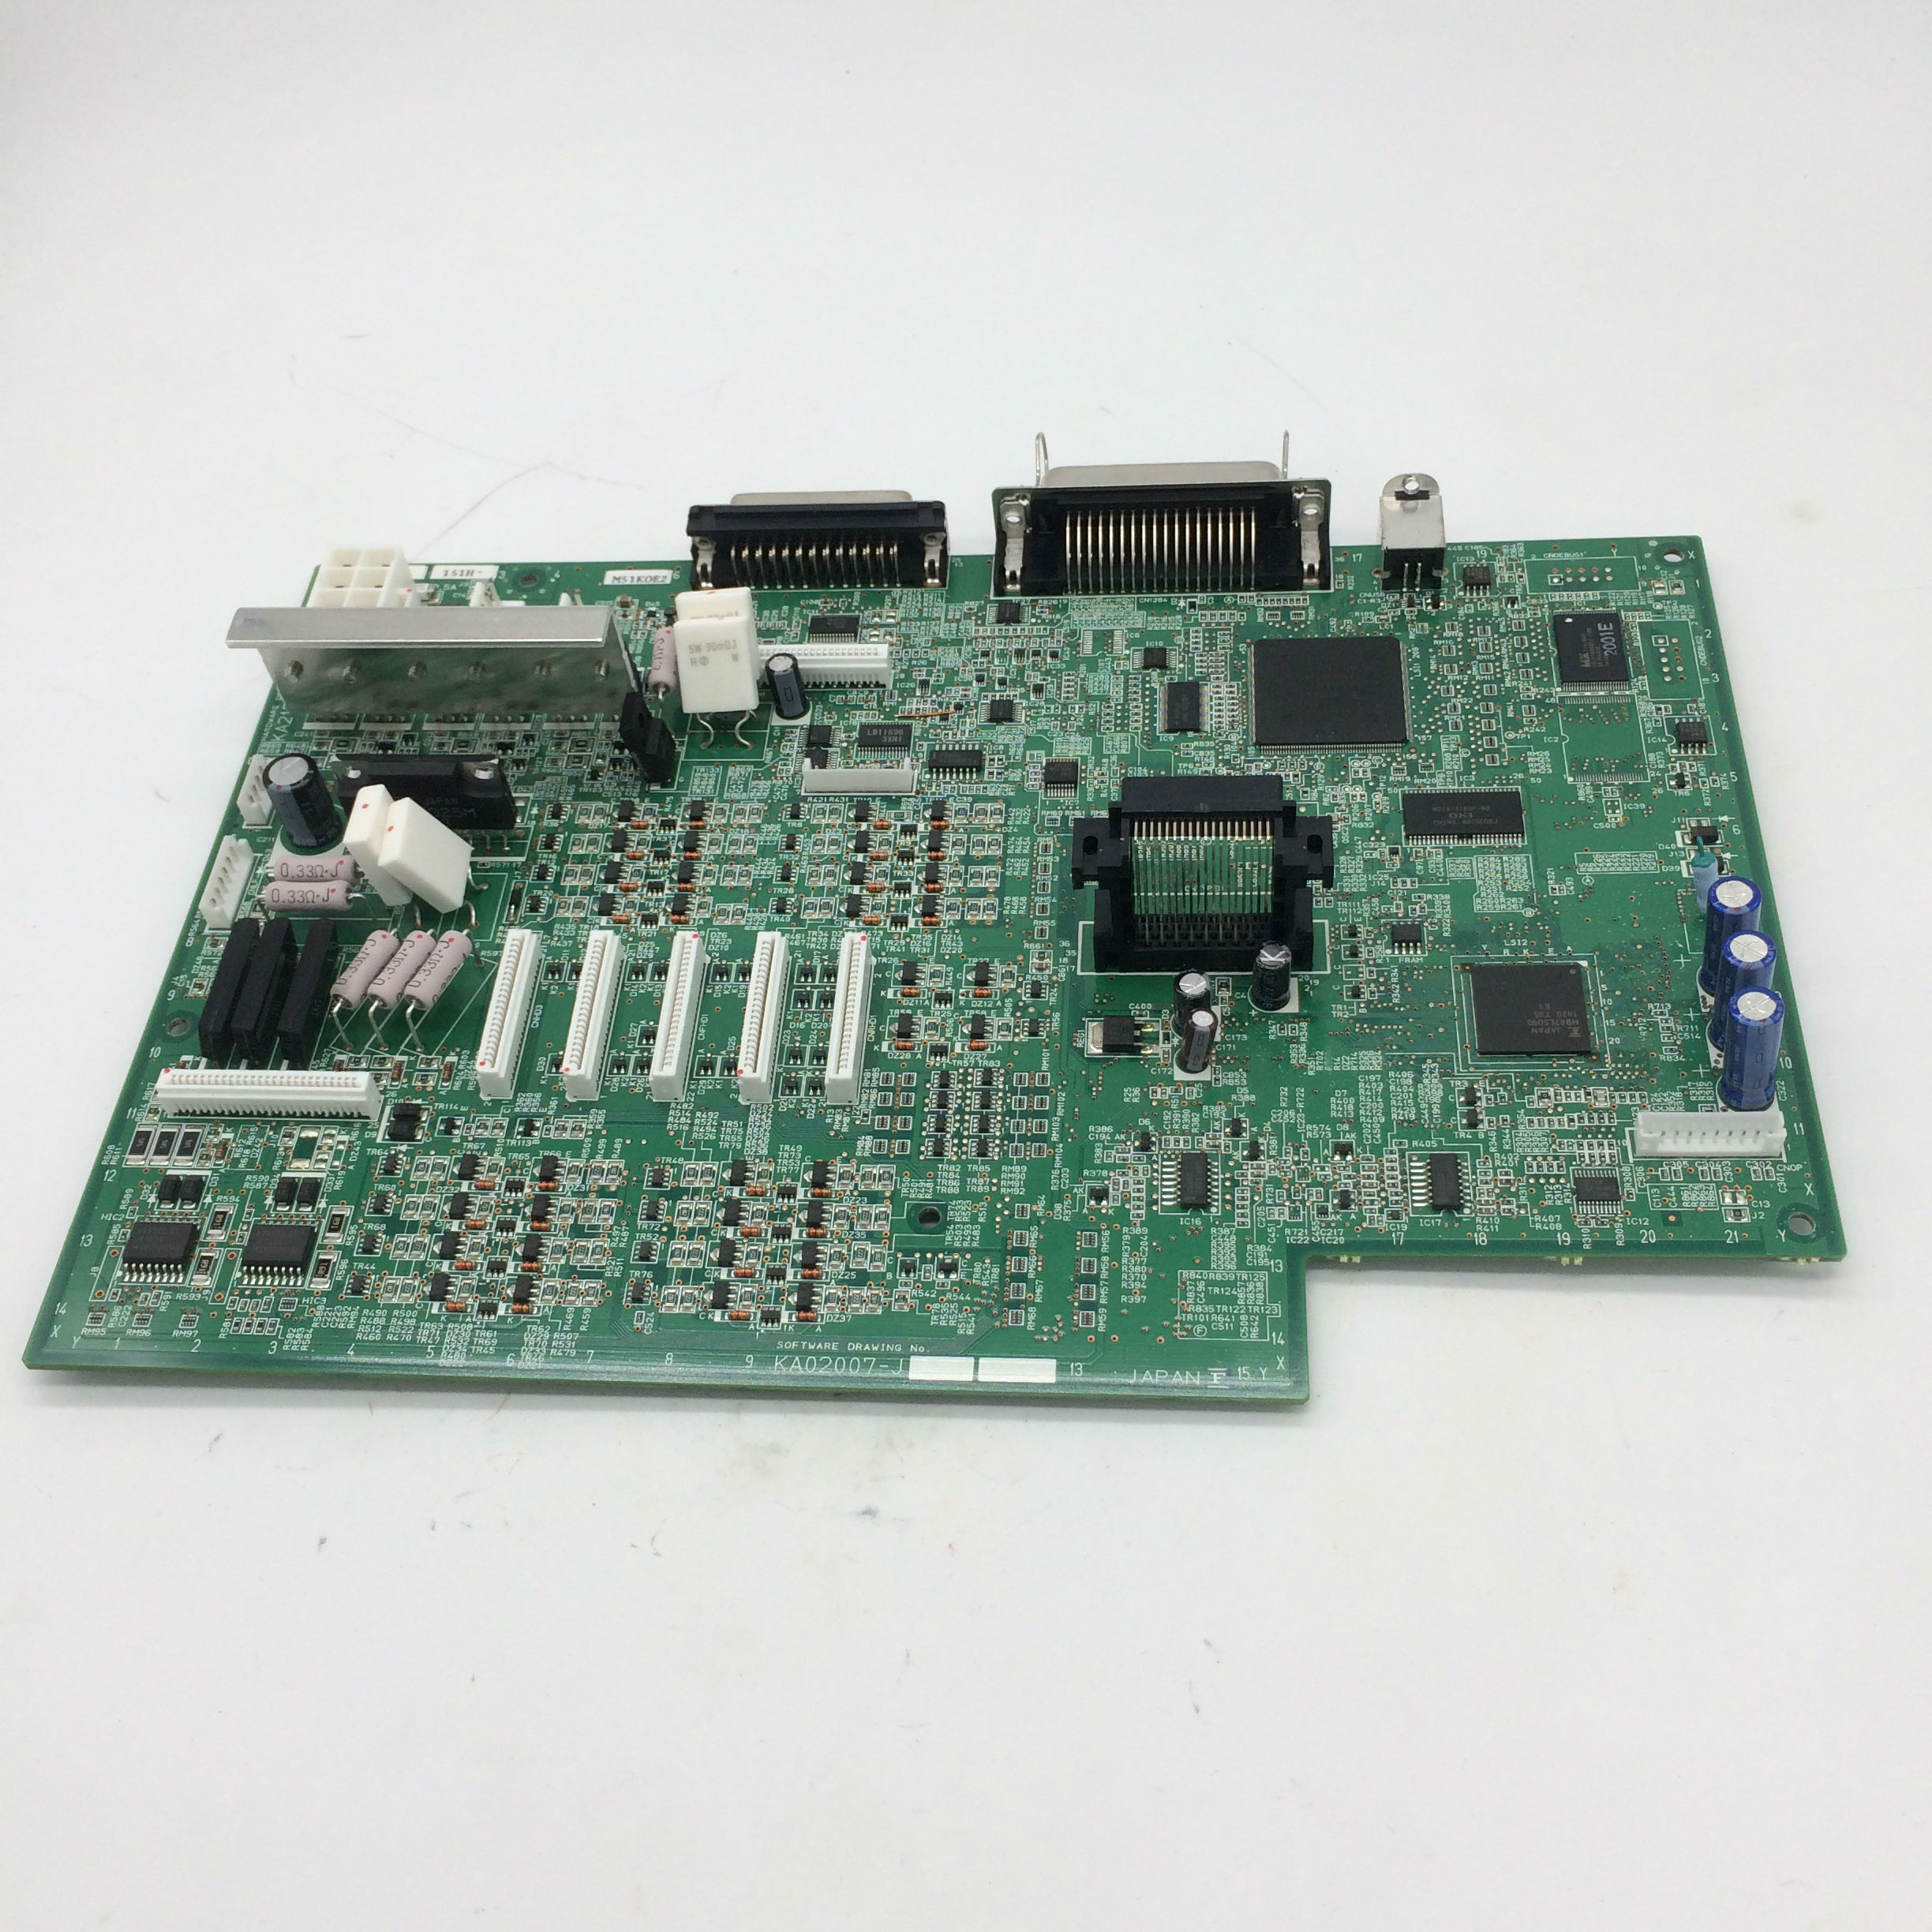 Main board for E PSON DFX-9000 printerMain board for E PSON DFX-9000 printer